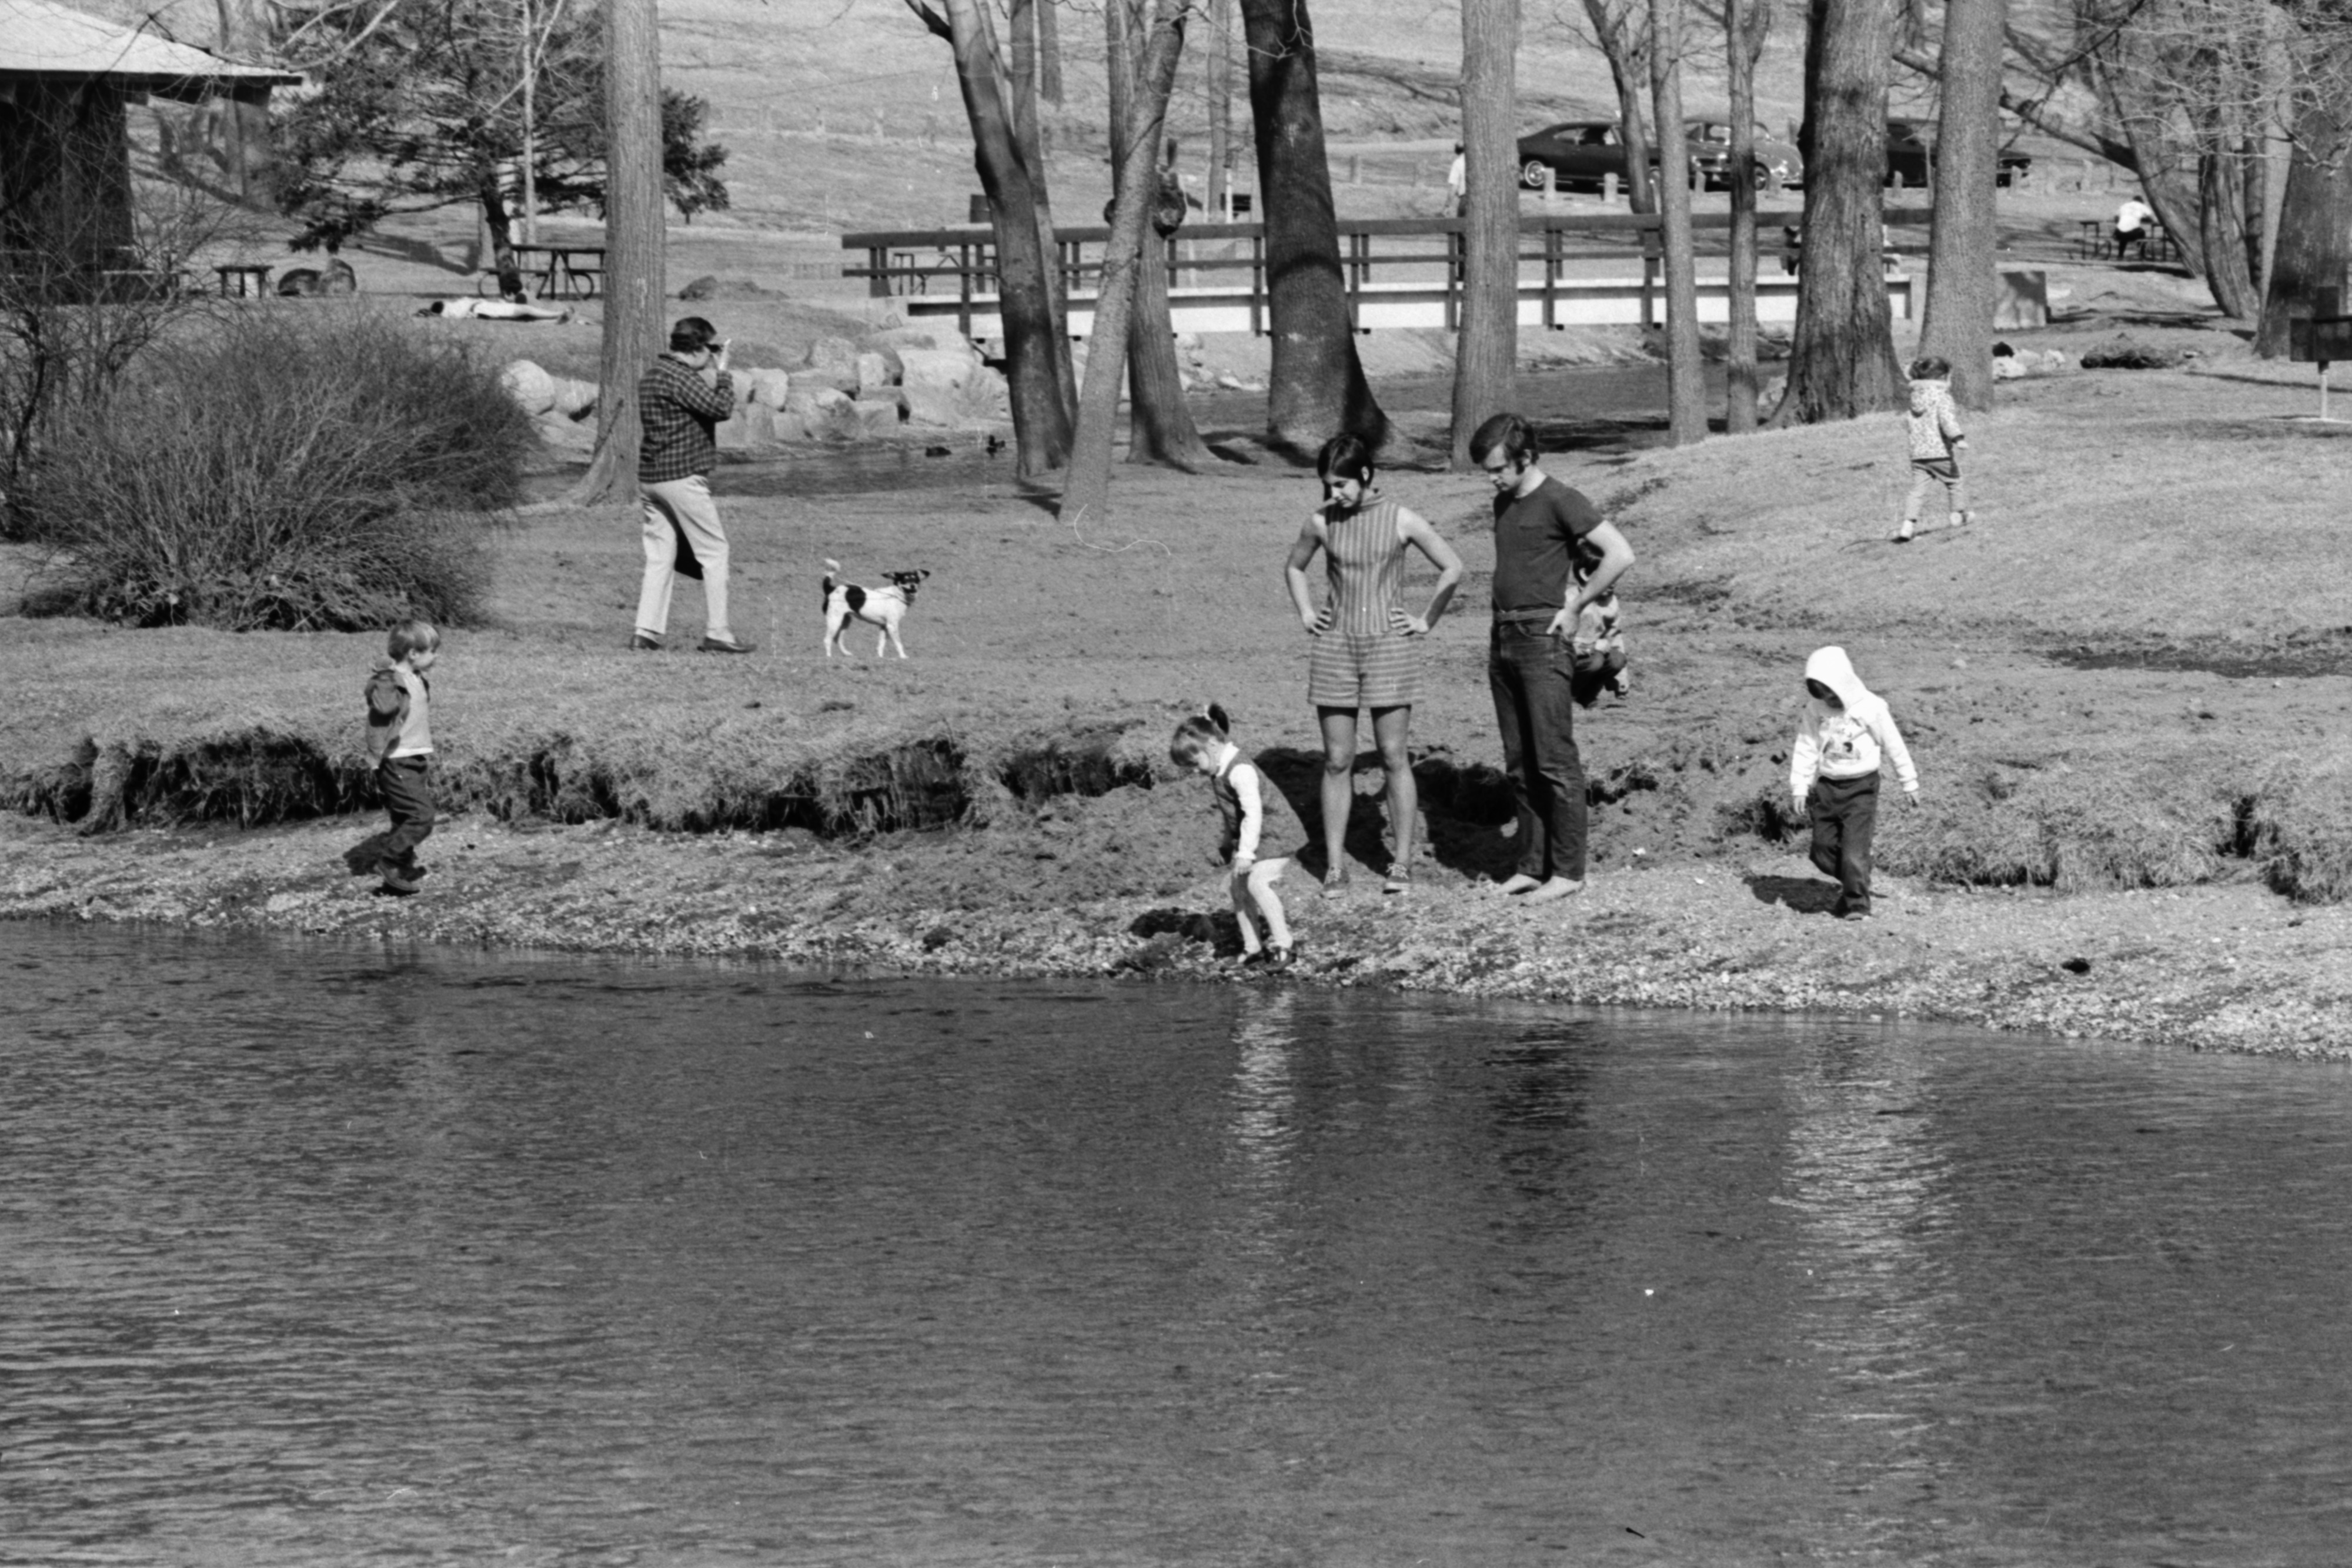 A warm day at Island Park, March 1969 image